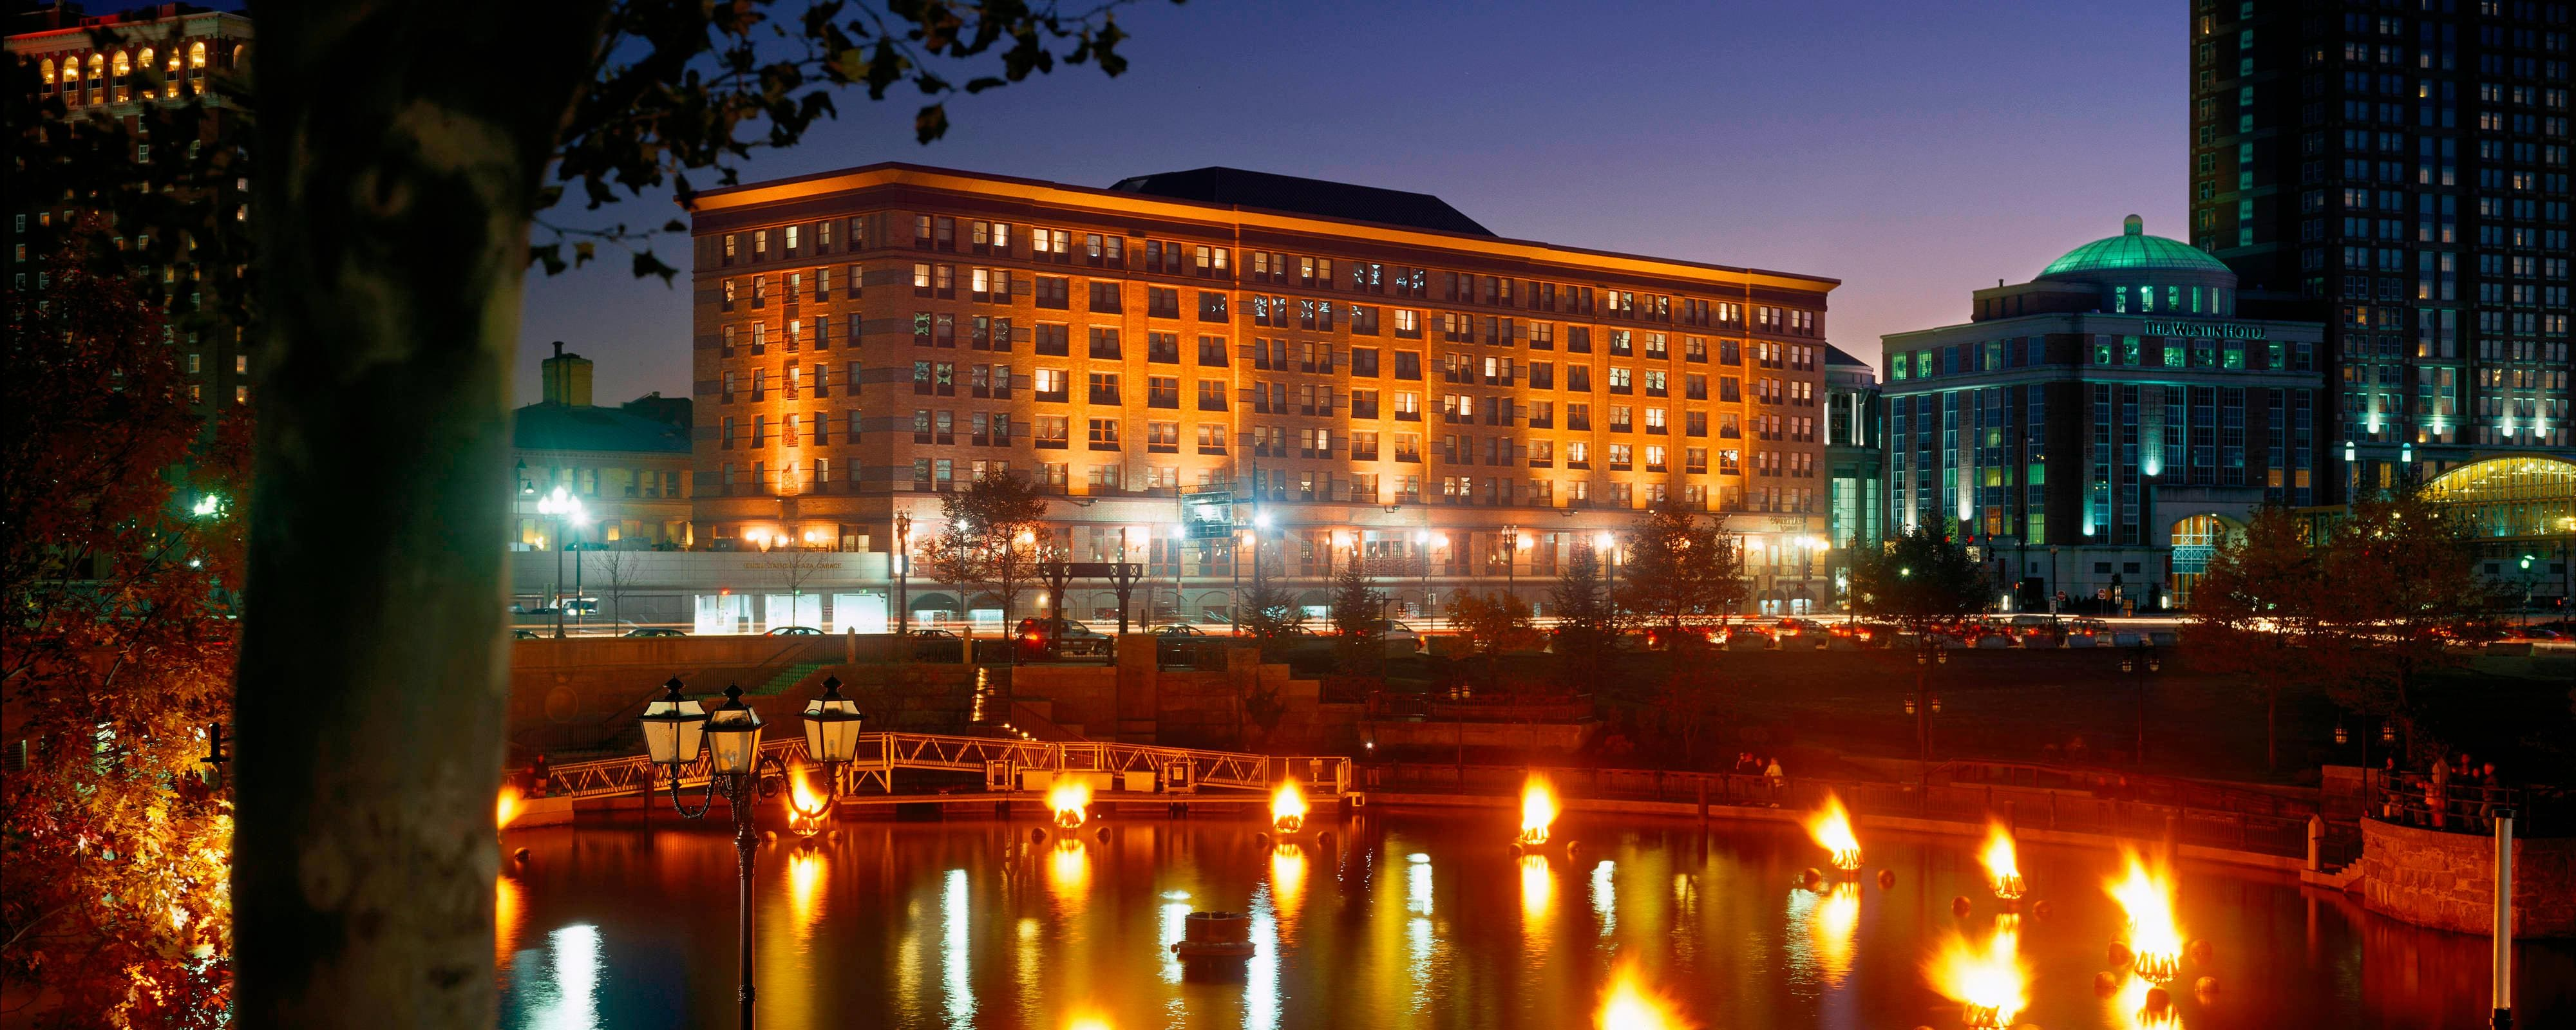 Providence RI Hotels: Courtyard by Marriott Providence Downtown ...